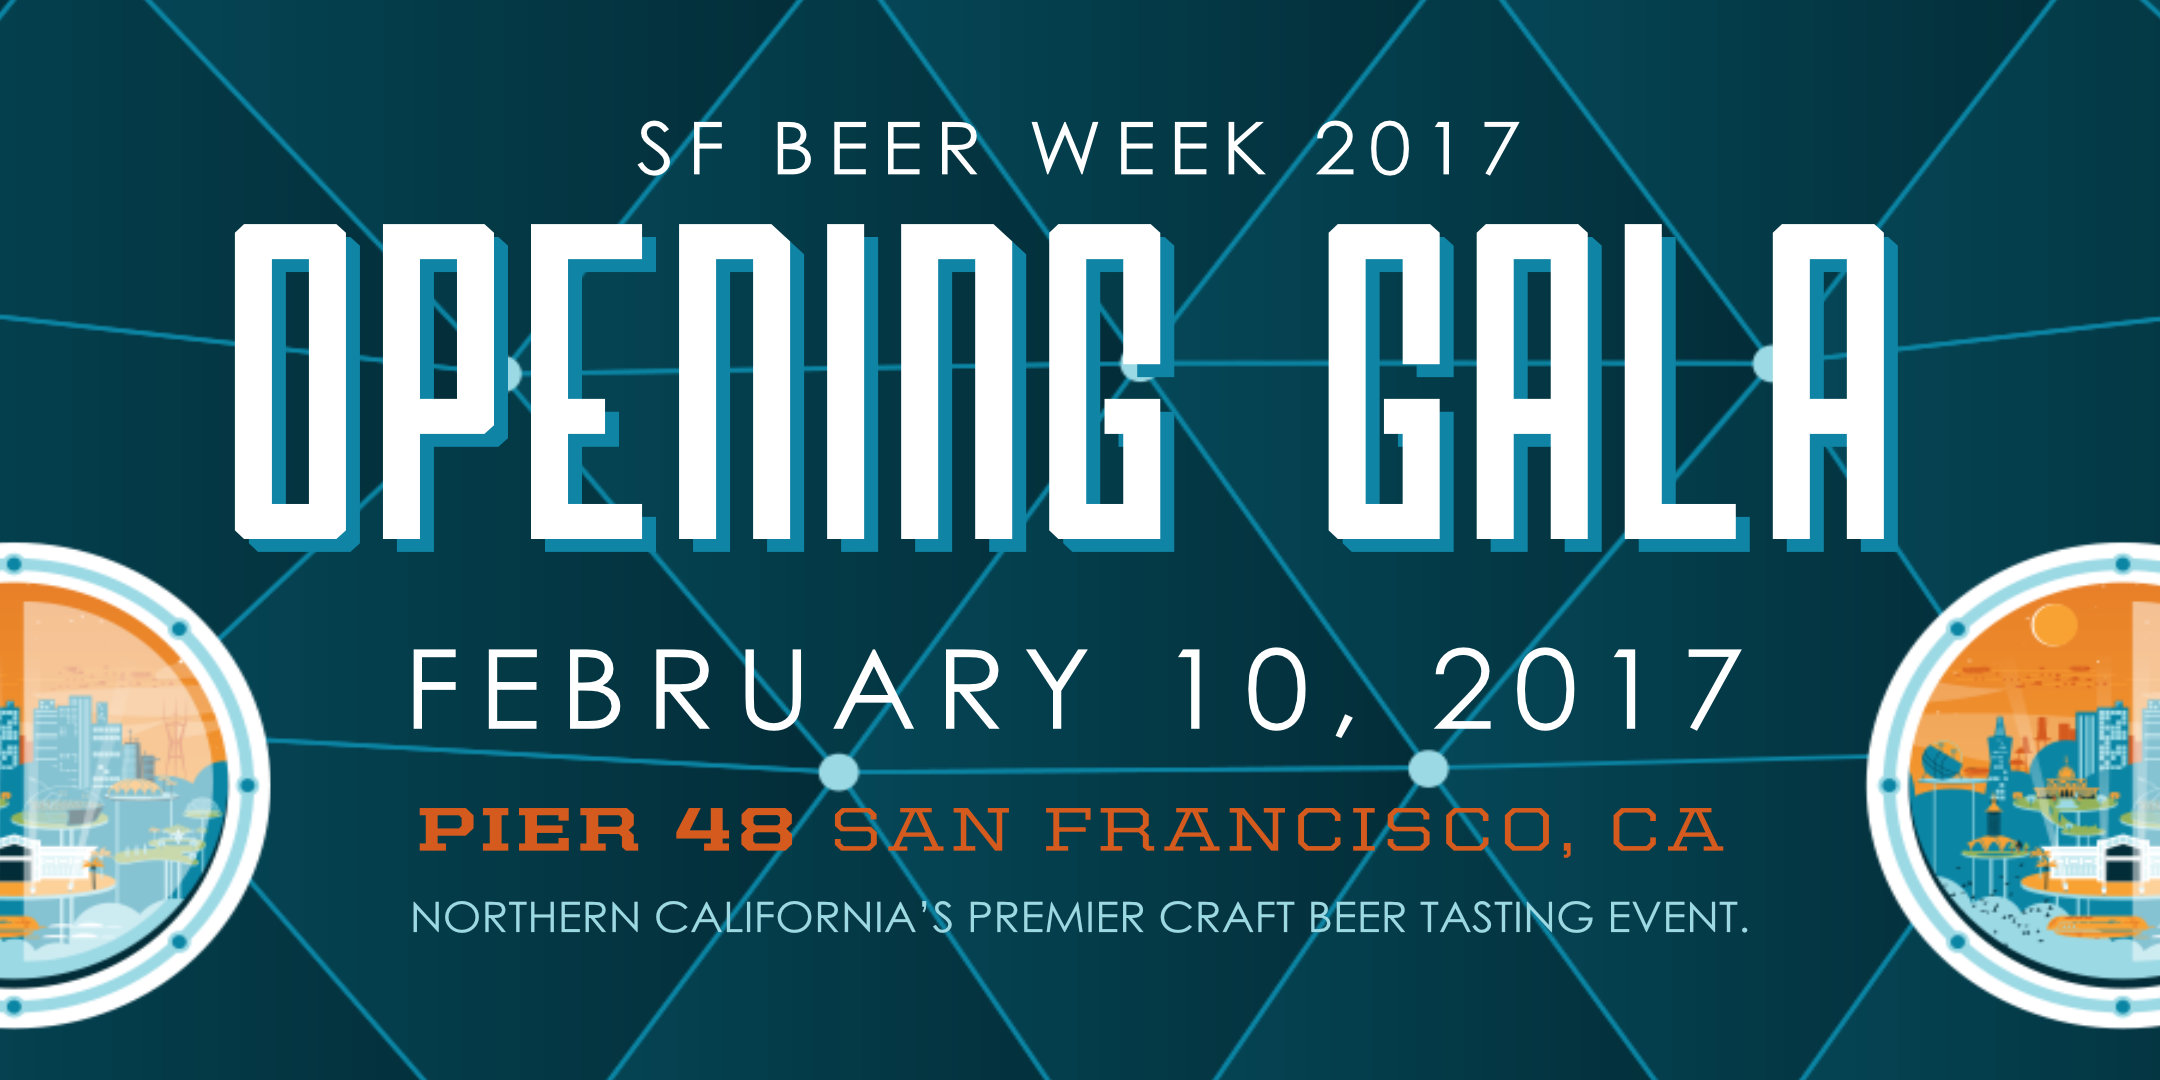 SFBW17_Eventbrite_Header_2160wx1080h